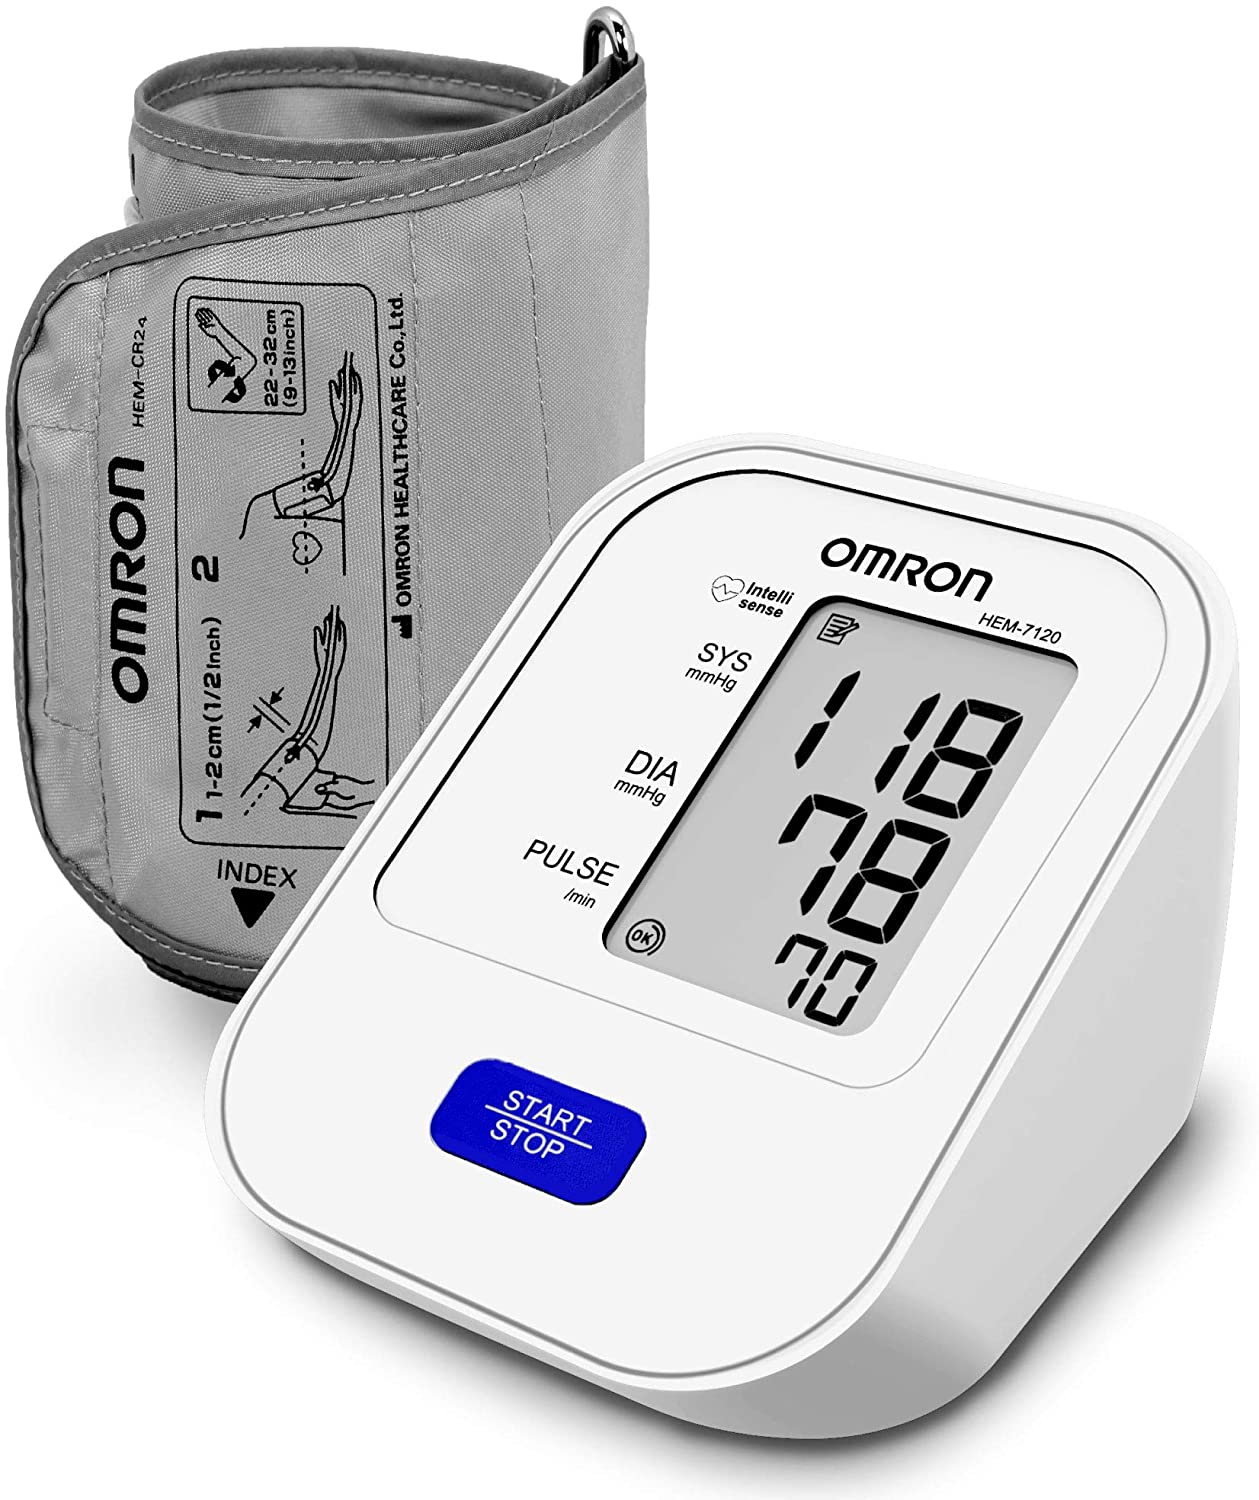 Omron HEM 7120 Upper Arm Automatic Blood Pressure Monitor